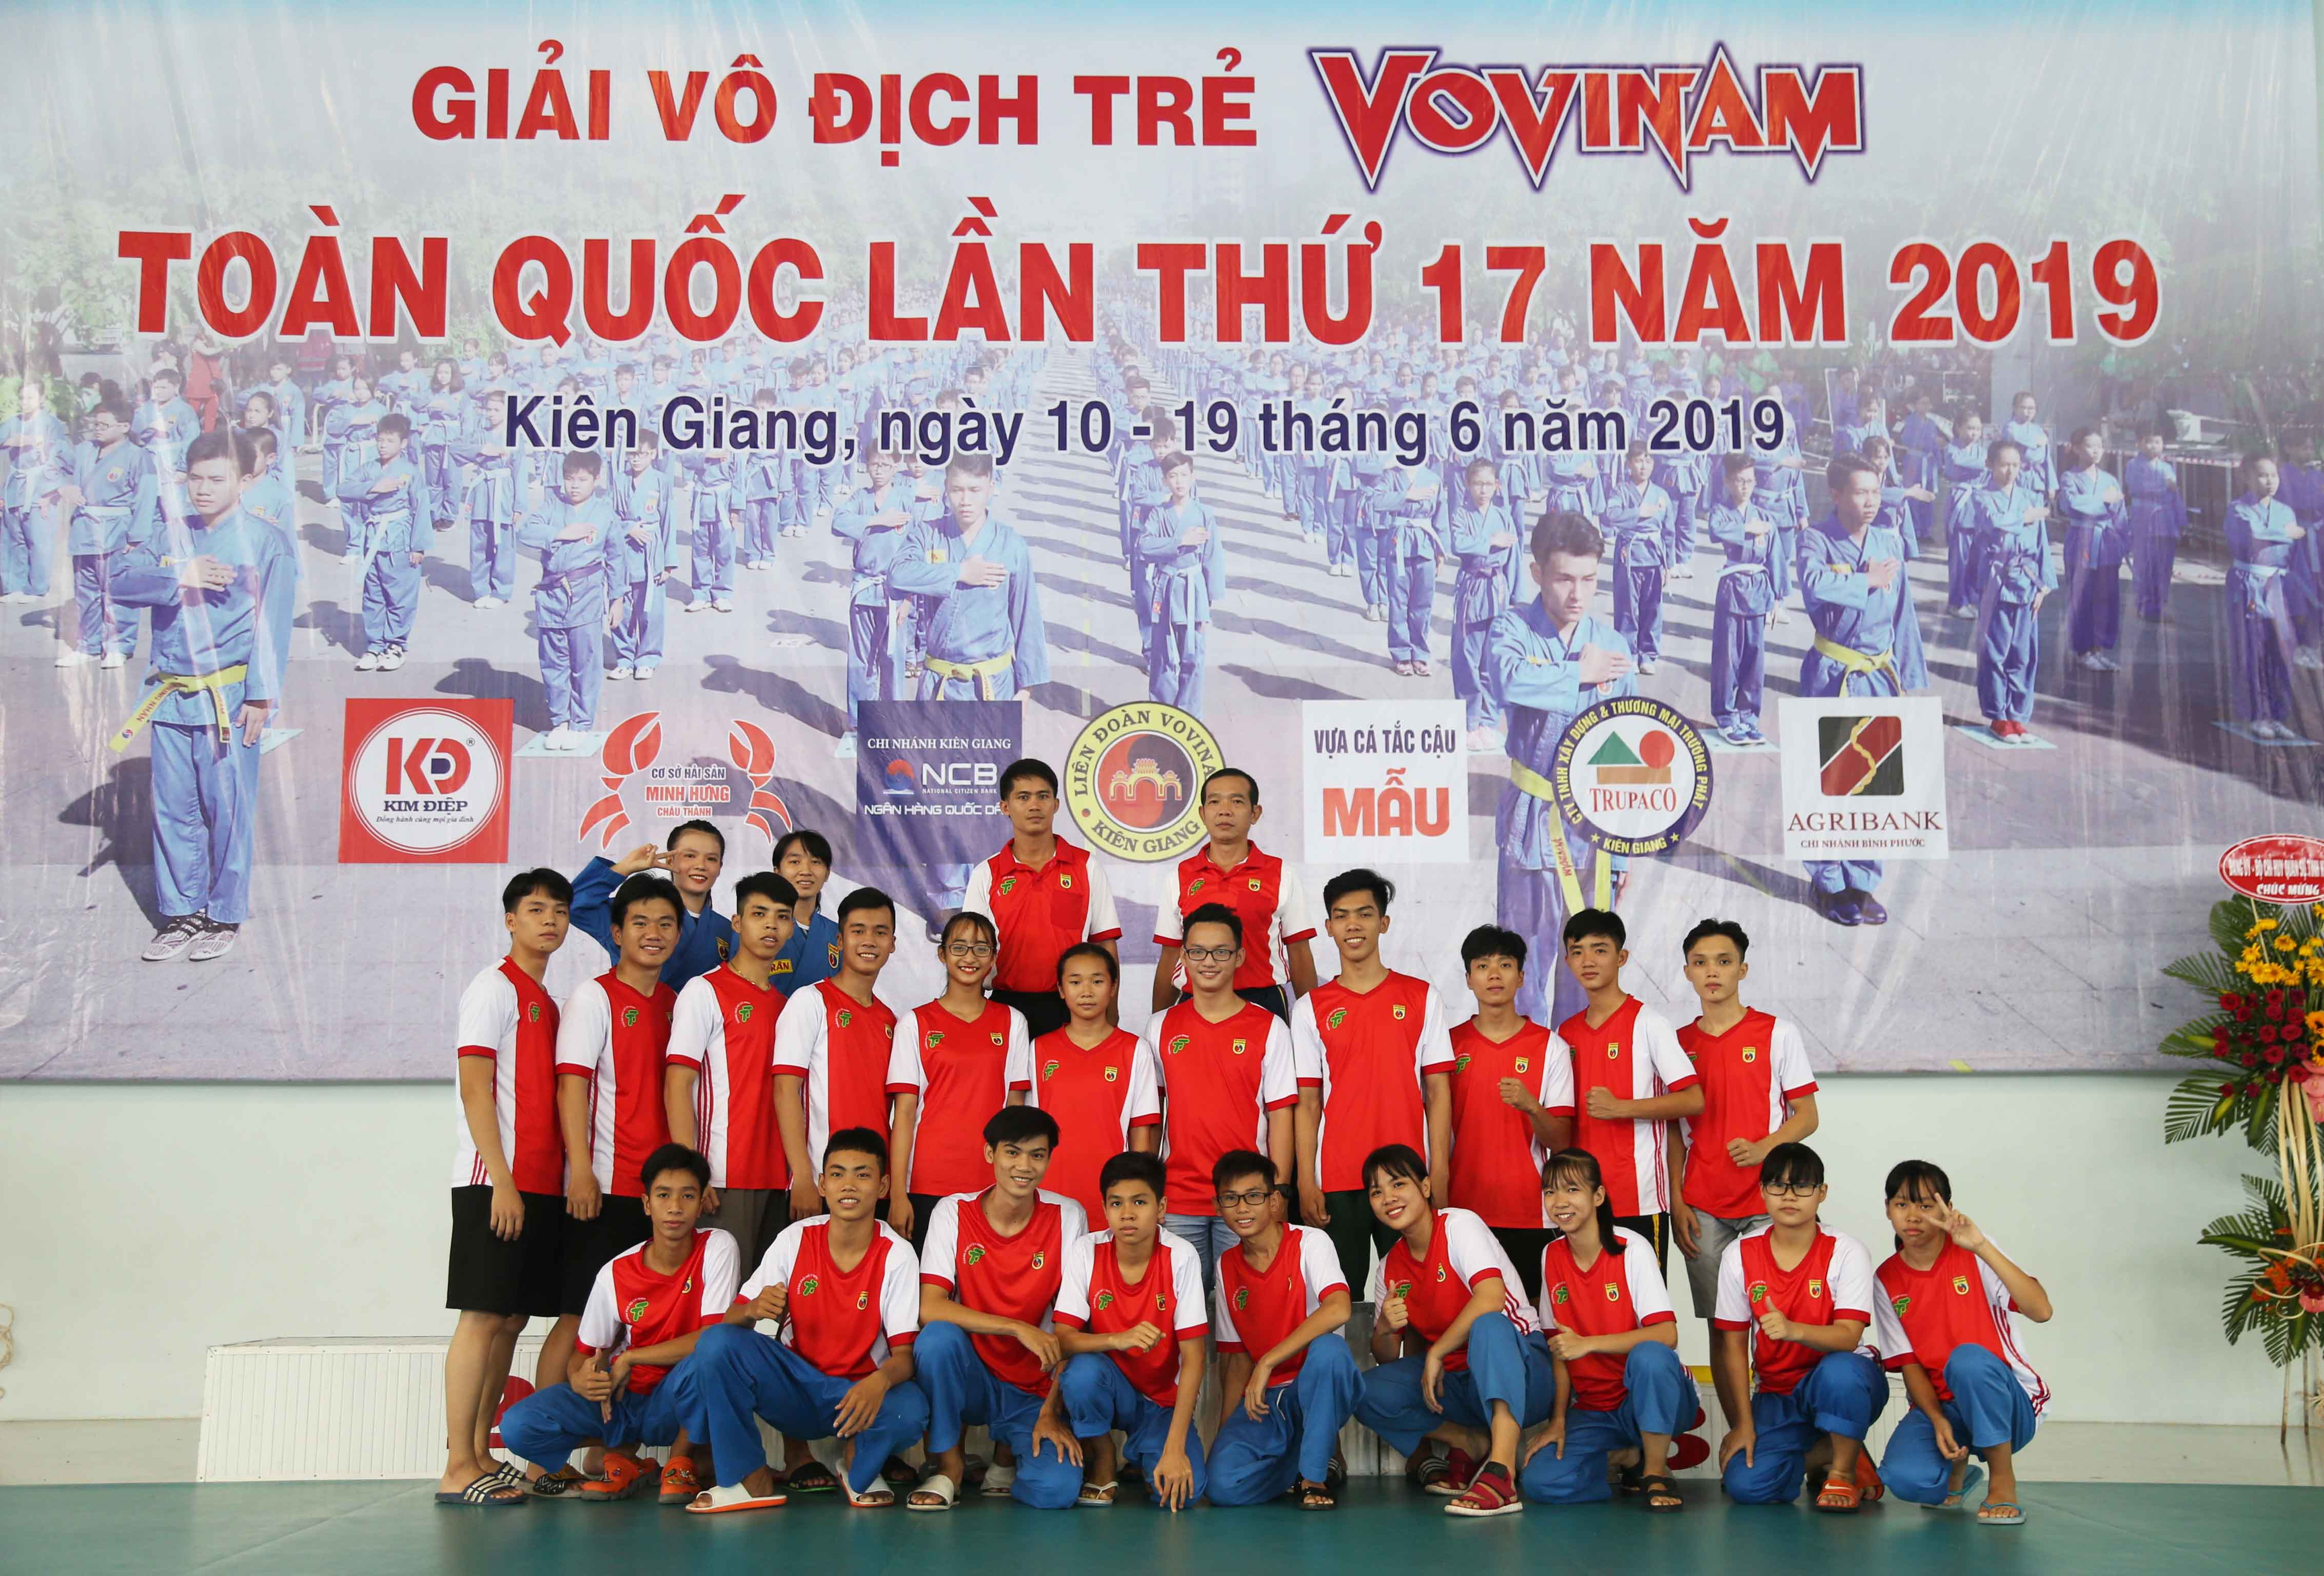 Giải VĐ trẻ Vovinam toàn quốc lần thứ 17-2019: TP.HCM xây chắc ngôi đầu